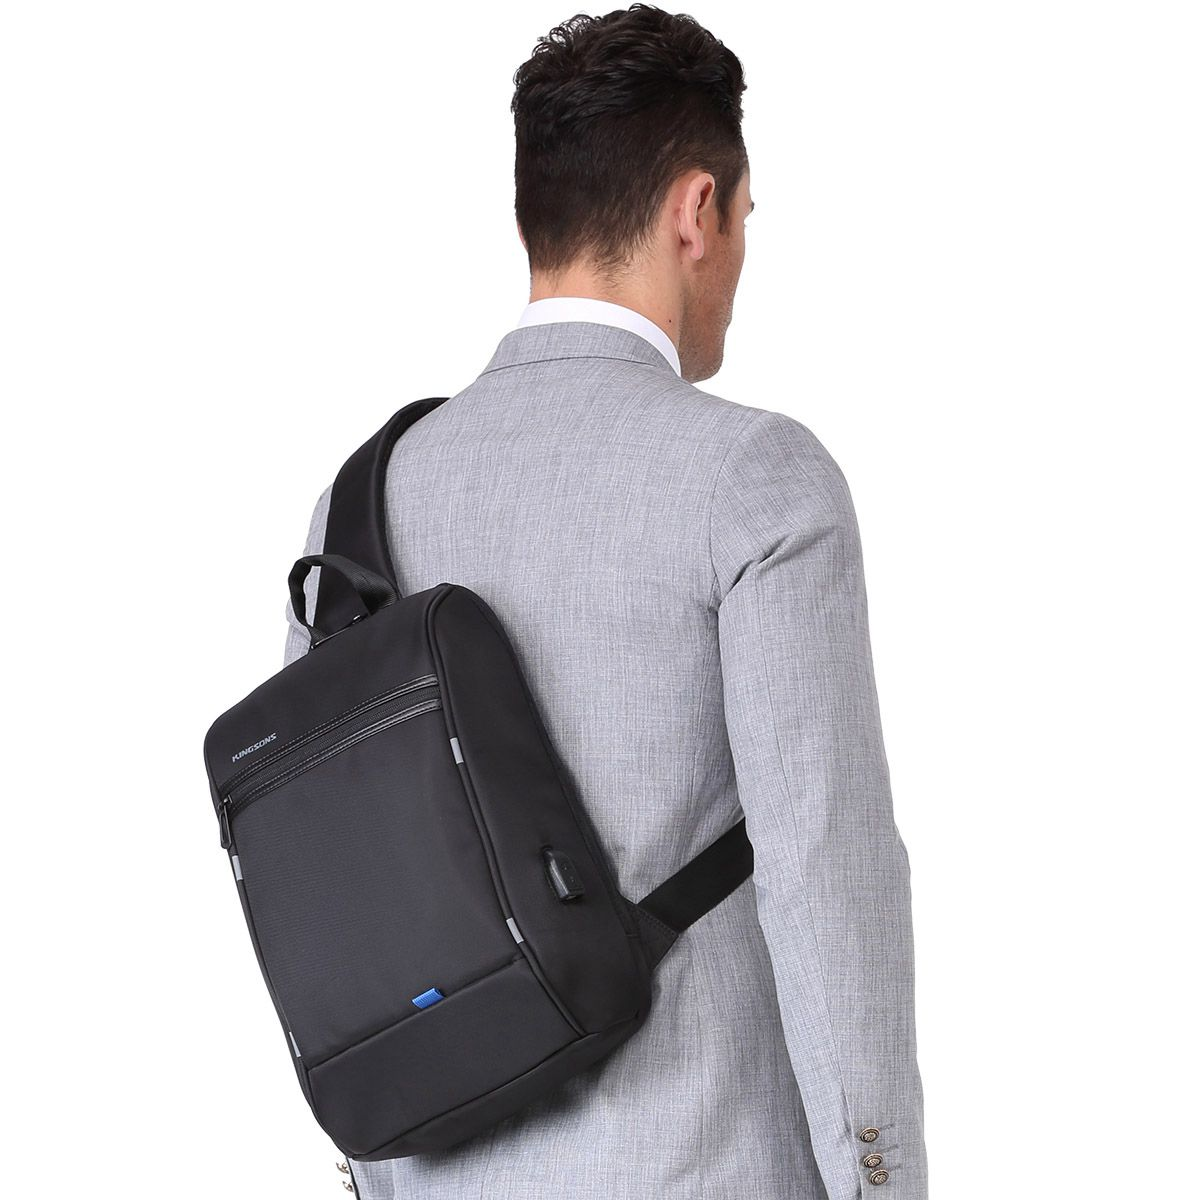 Kingsons Crossbody Bags For Men Messenger Chest Bag Casual Bag Anti-theft Usb Charging Single Shoulder Strap Bags